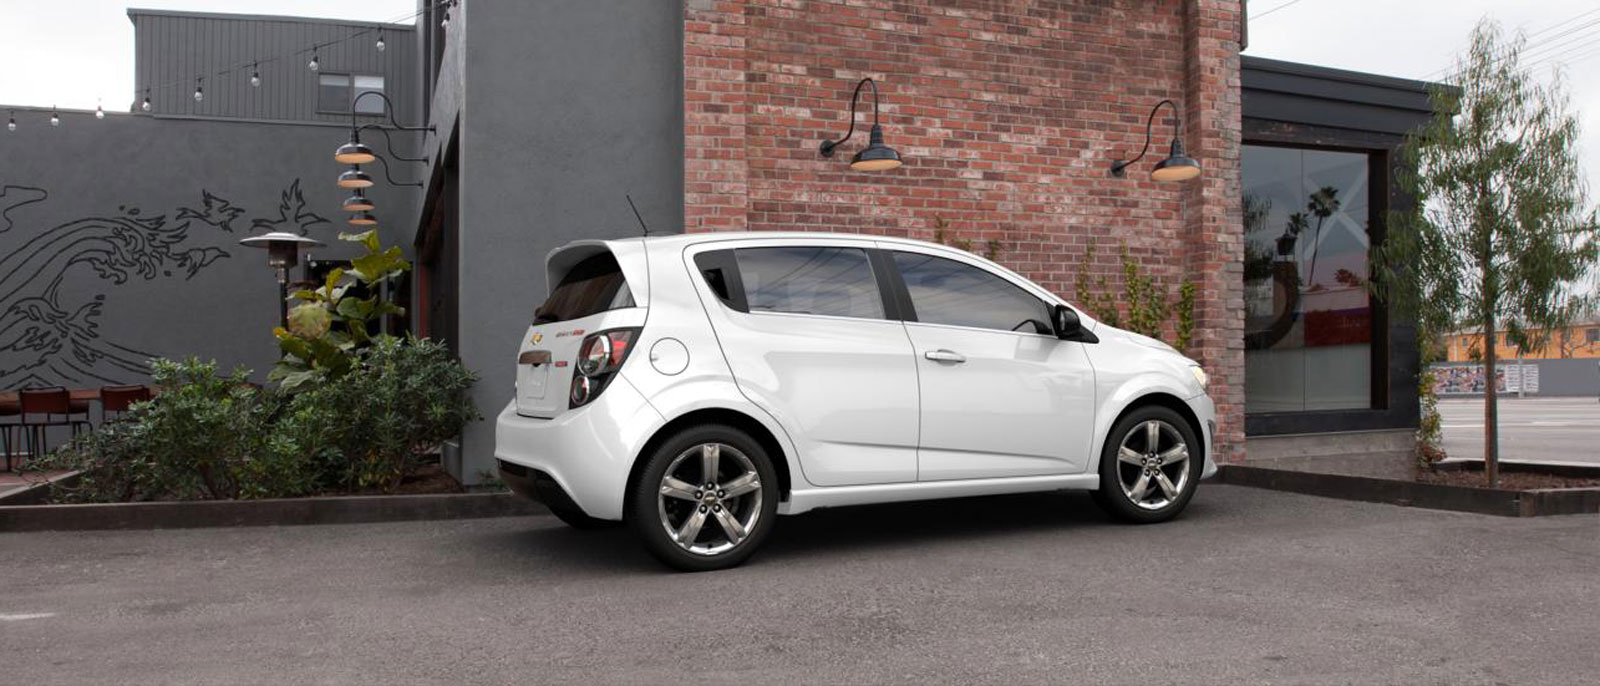 2015 chevrolet sonic albany schenectady depaula chevrolet. Black Bedroom Furniture Sets. Home Design Ideas